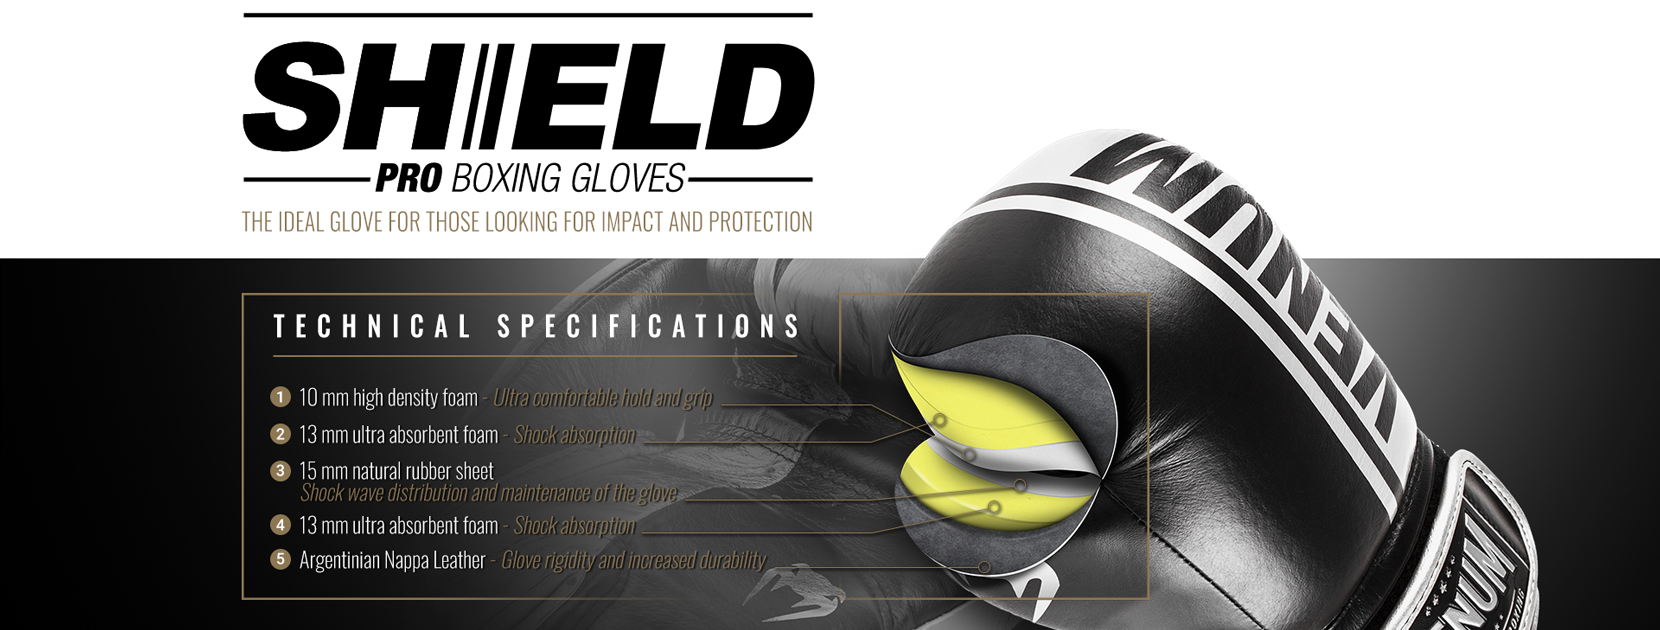 Shield Pro Boxing Gloves